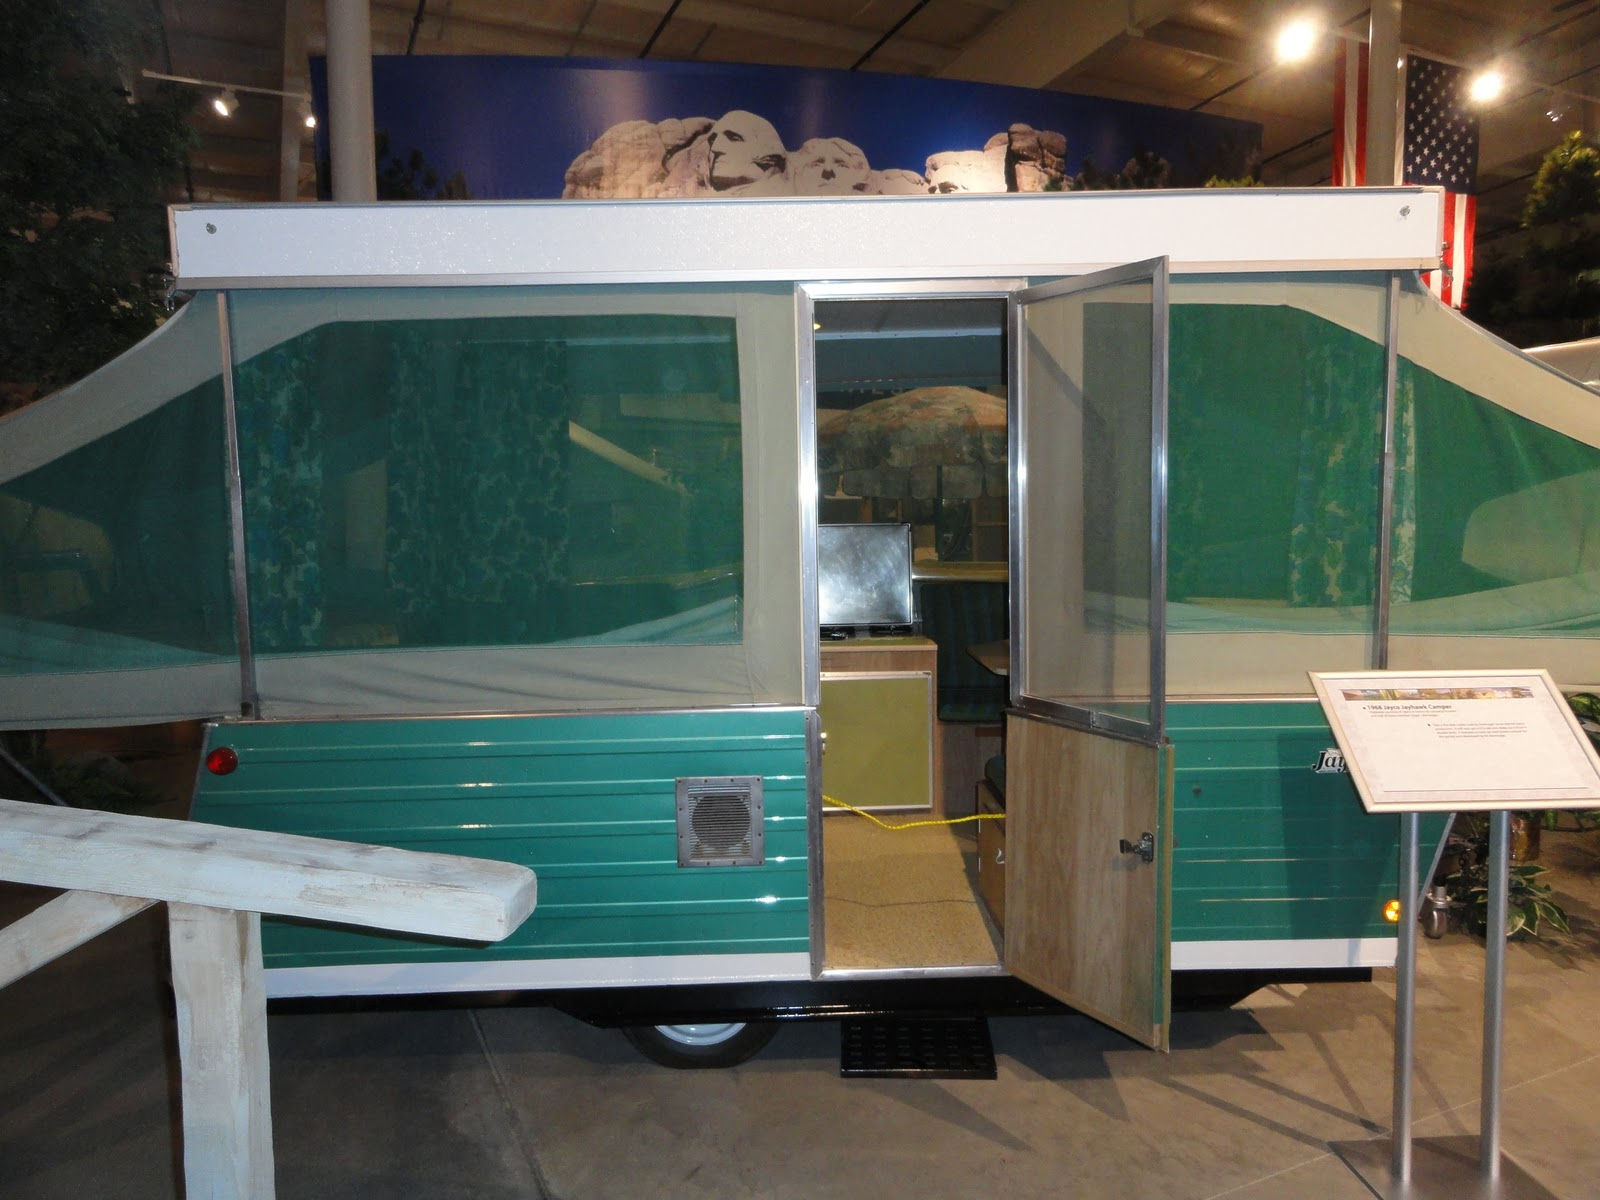 Brilliant Quirky Attraction RV Hall Of Fame  Quirky Travel Guy